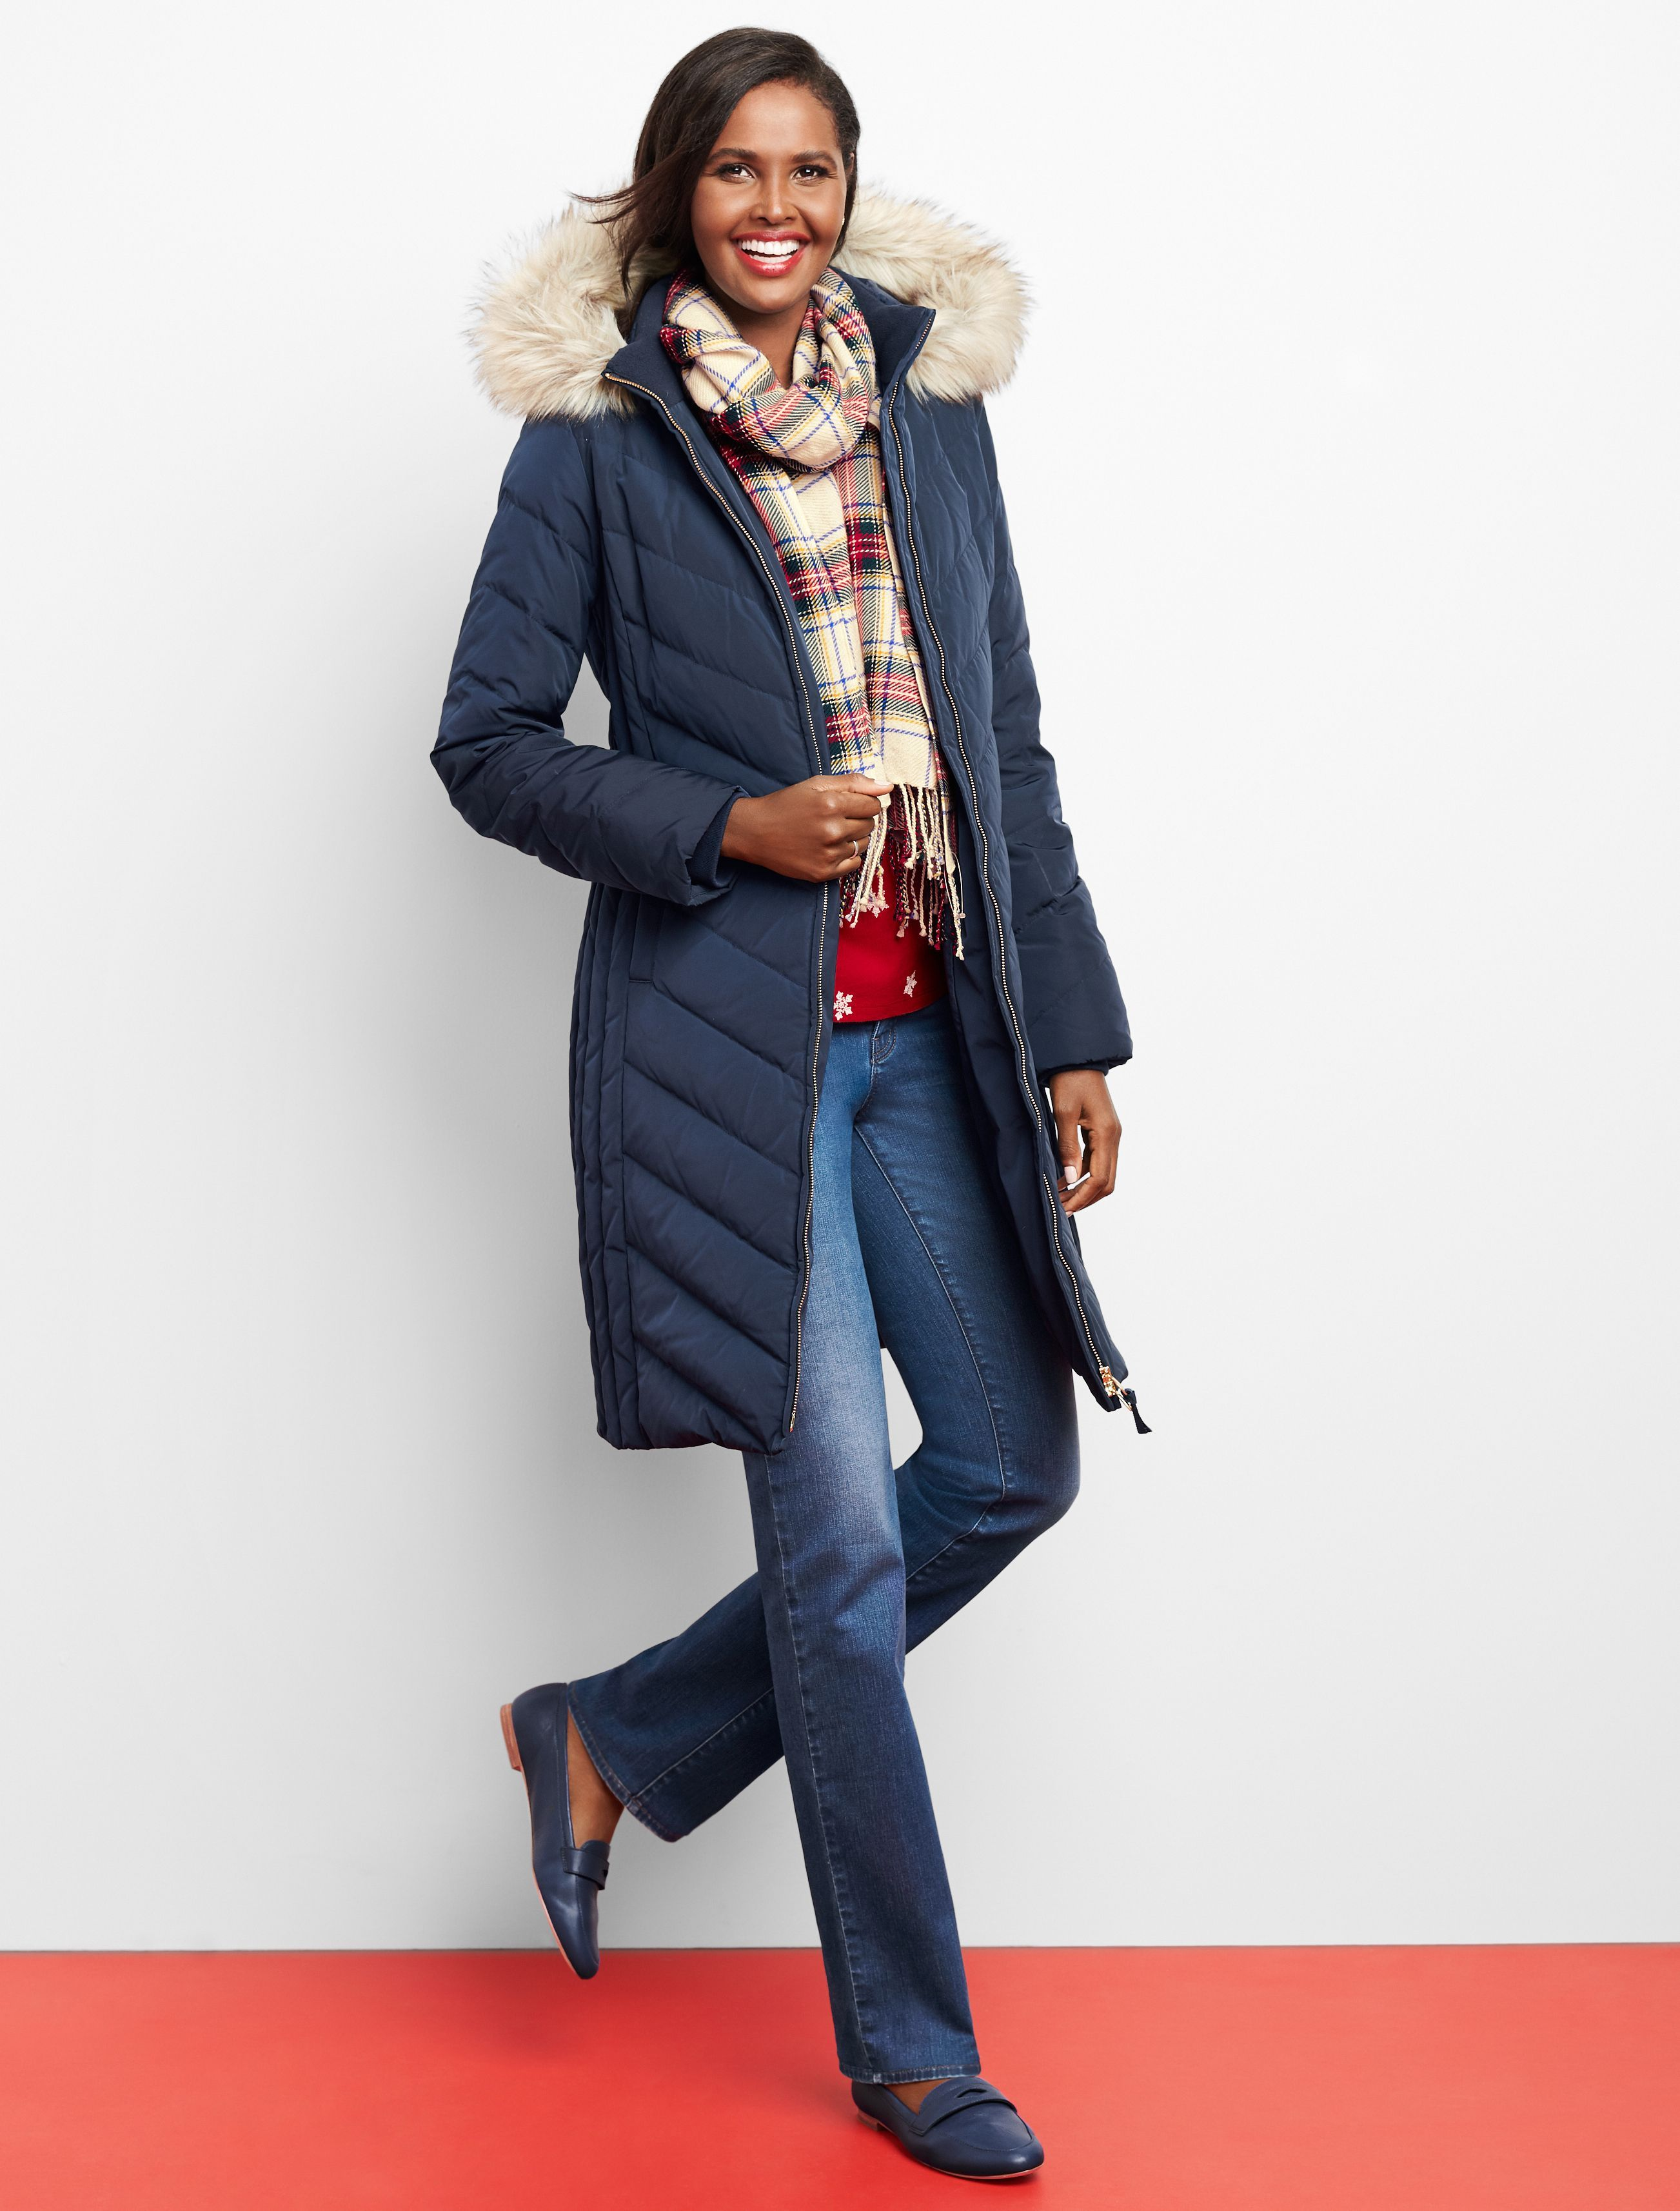 Brave The Elements With Confidence In This Ultra Cozy Long Puffer Jacket Diagonal Quilting Flatters Your Fig Puffer Jacket Long Jeans And Boots Winter Outfits [ 3428 x 2605 Pixel ]